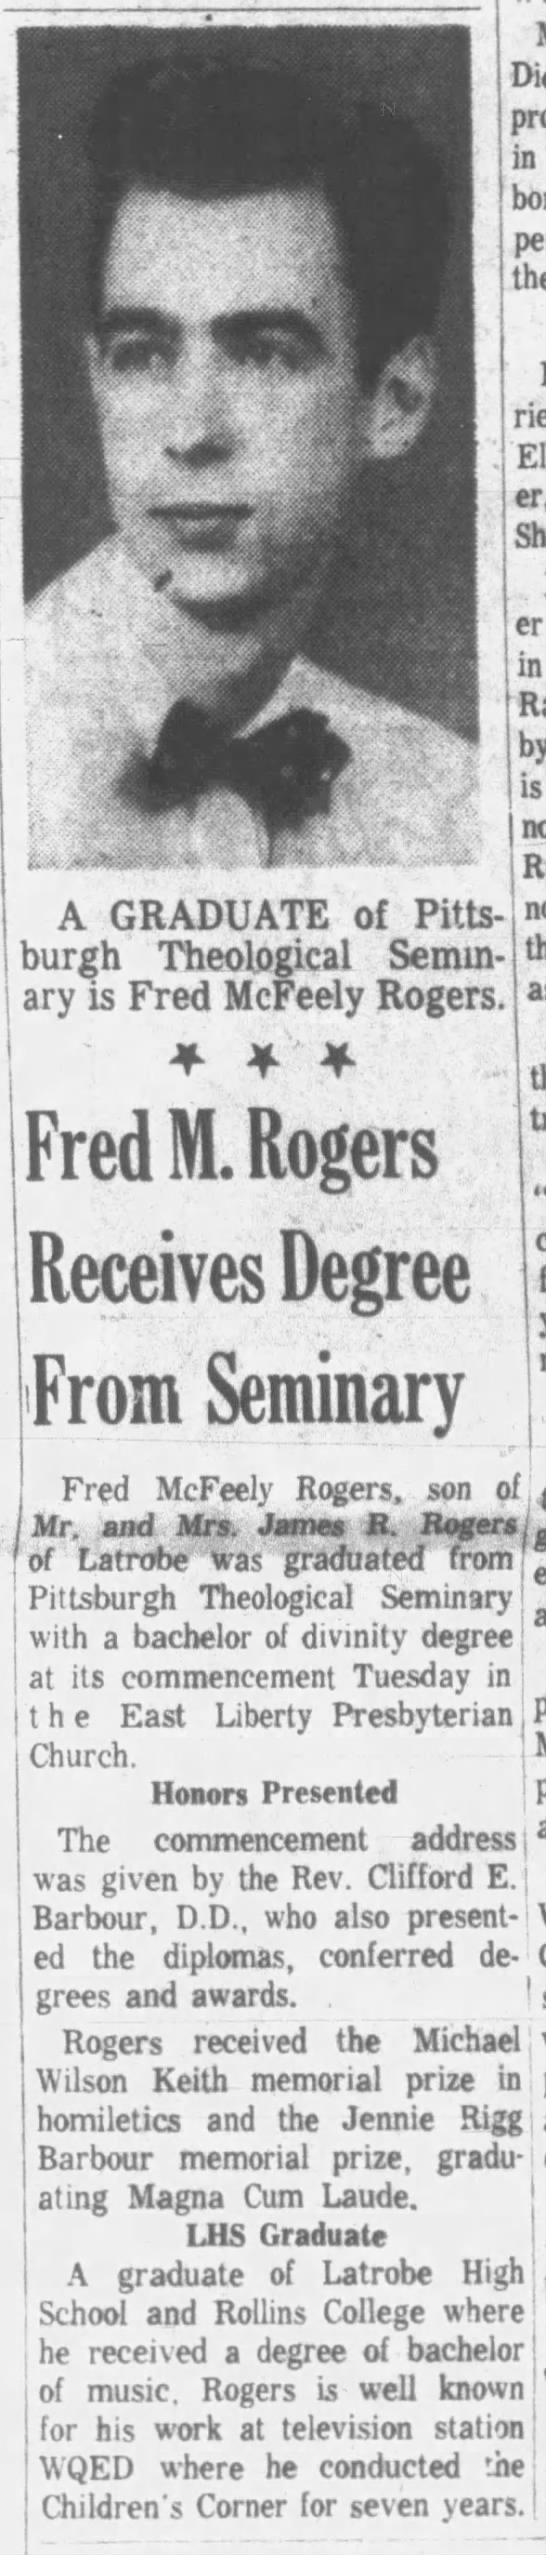 Fred Rogers graduates from Pittsburgh Theological Seminary. -